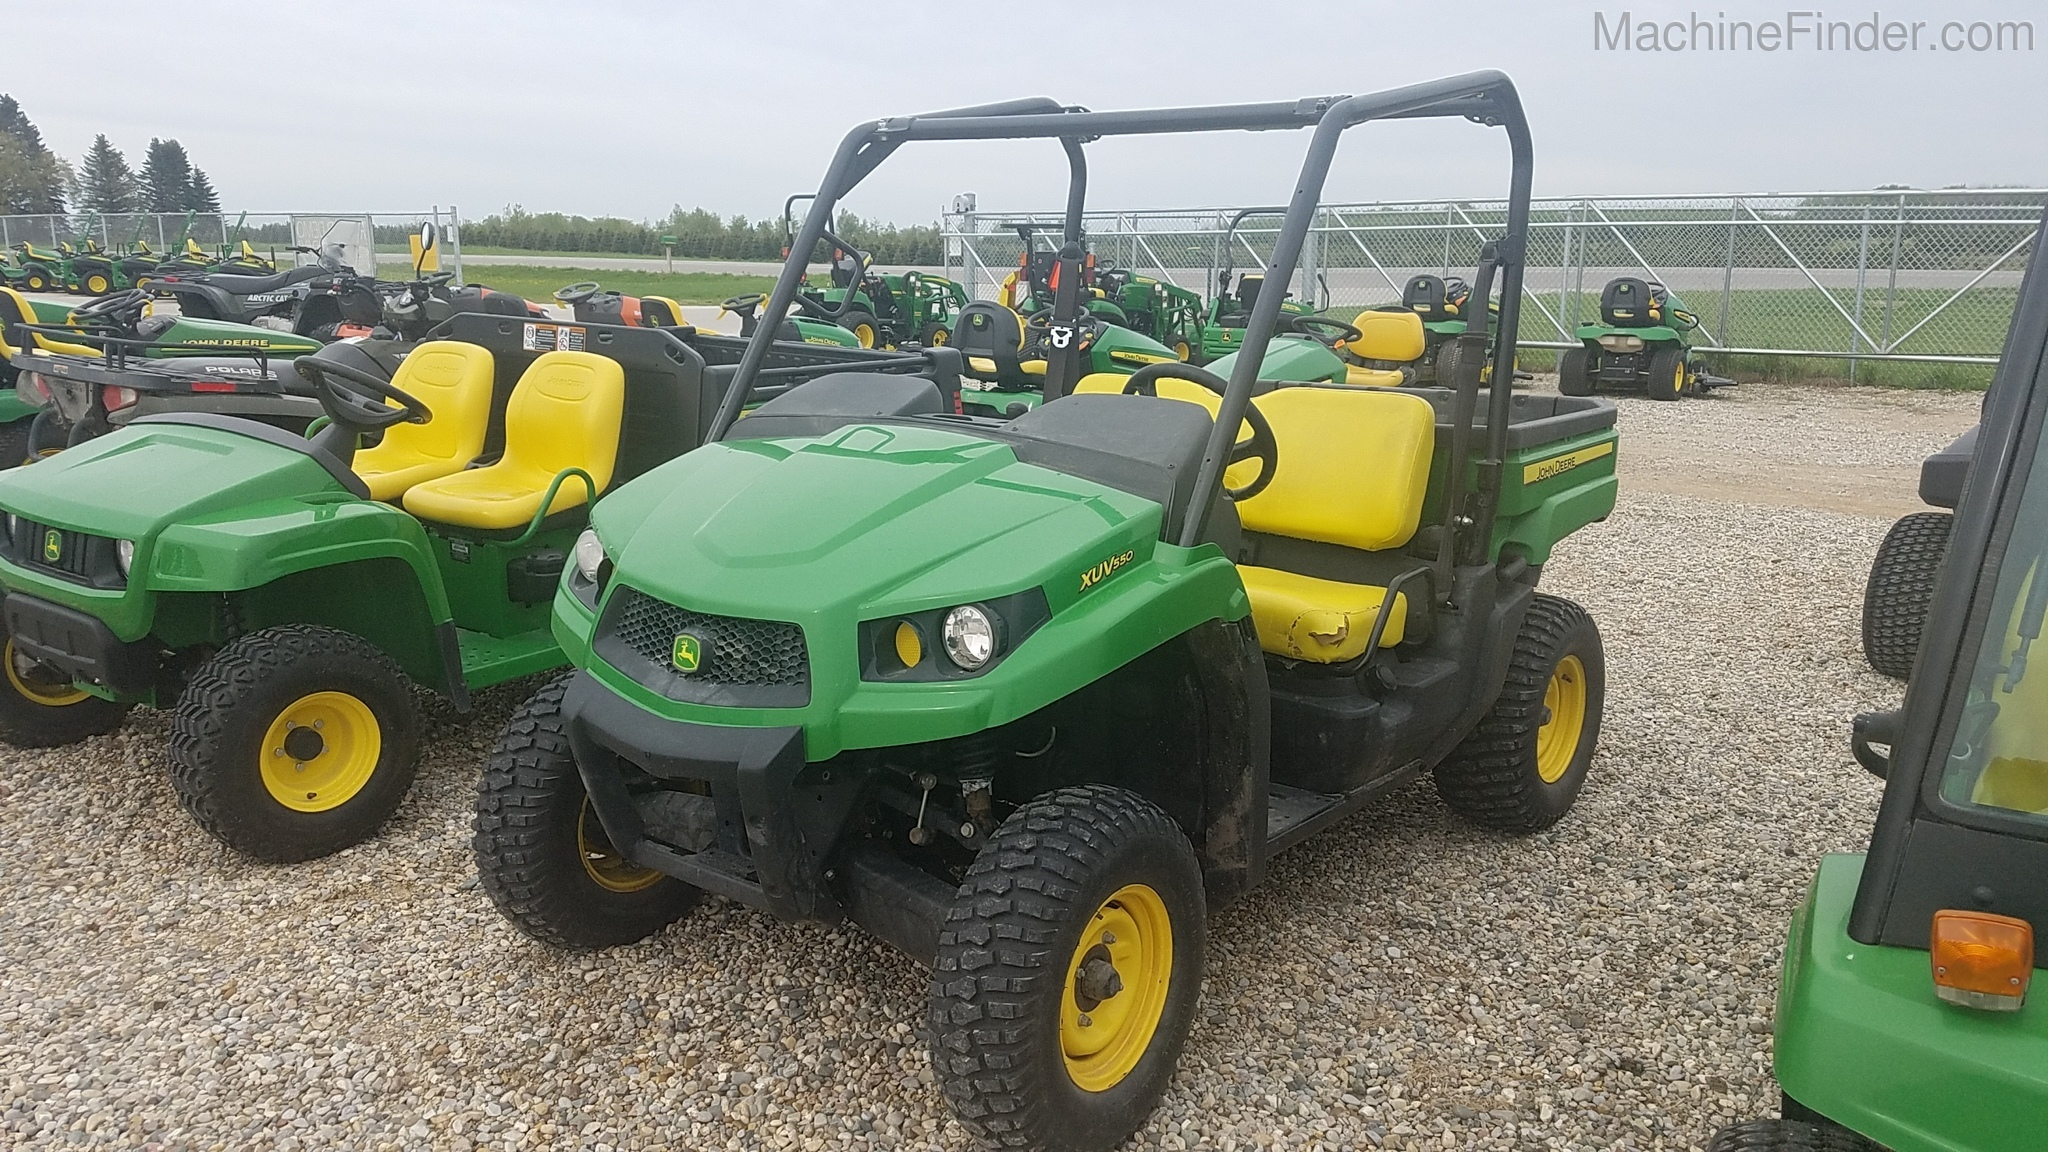 2015 John Deere XUV 550 GREEN ATVs & Gators John Deere MachineFinder